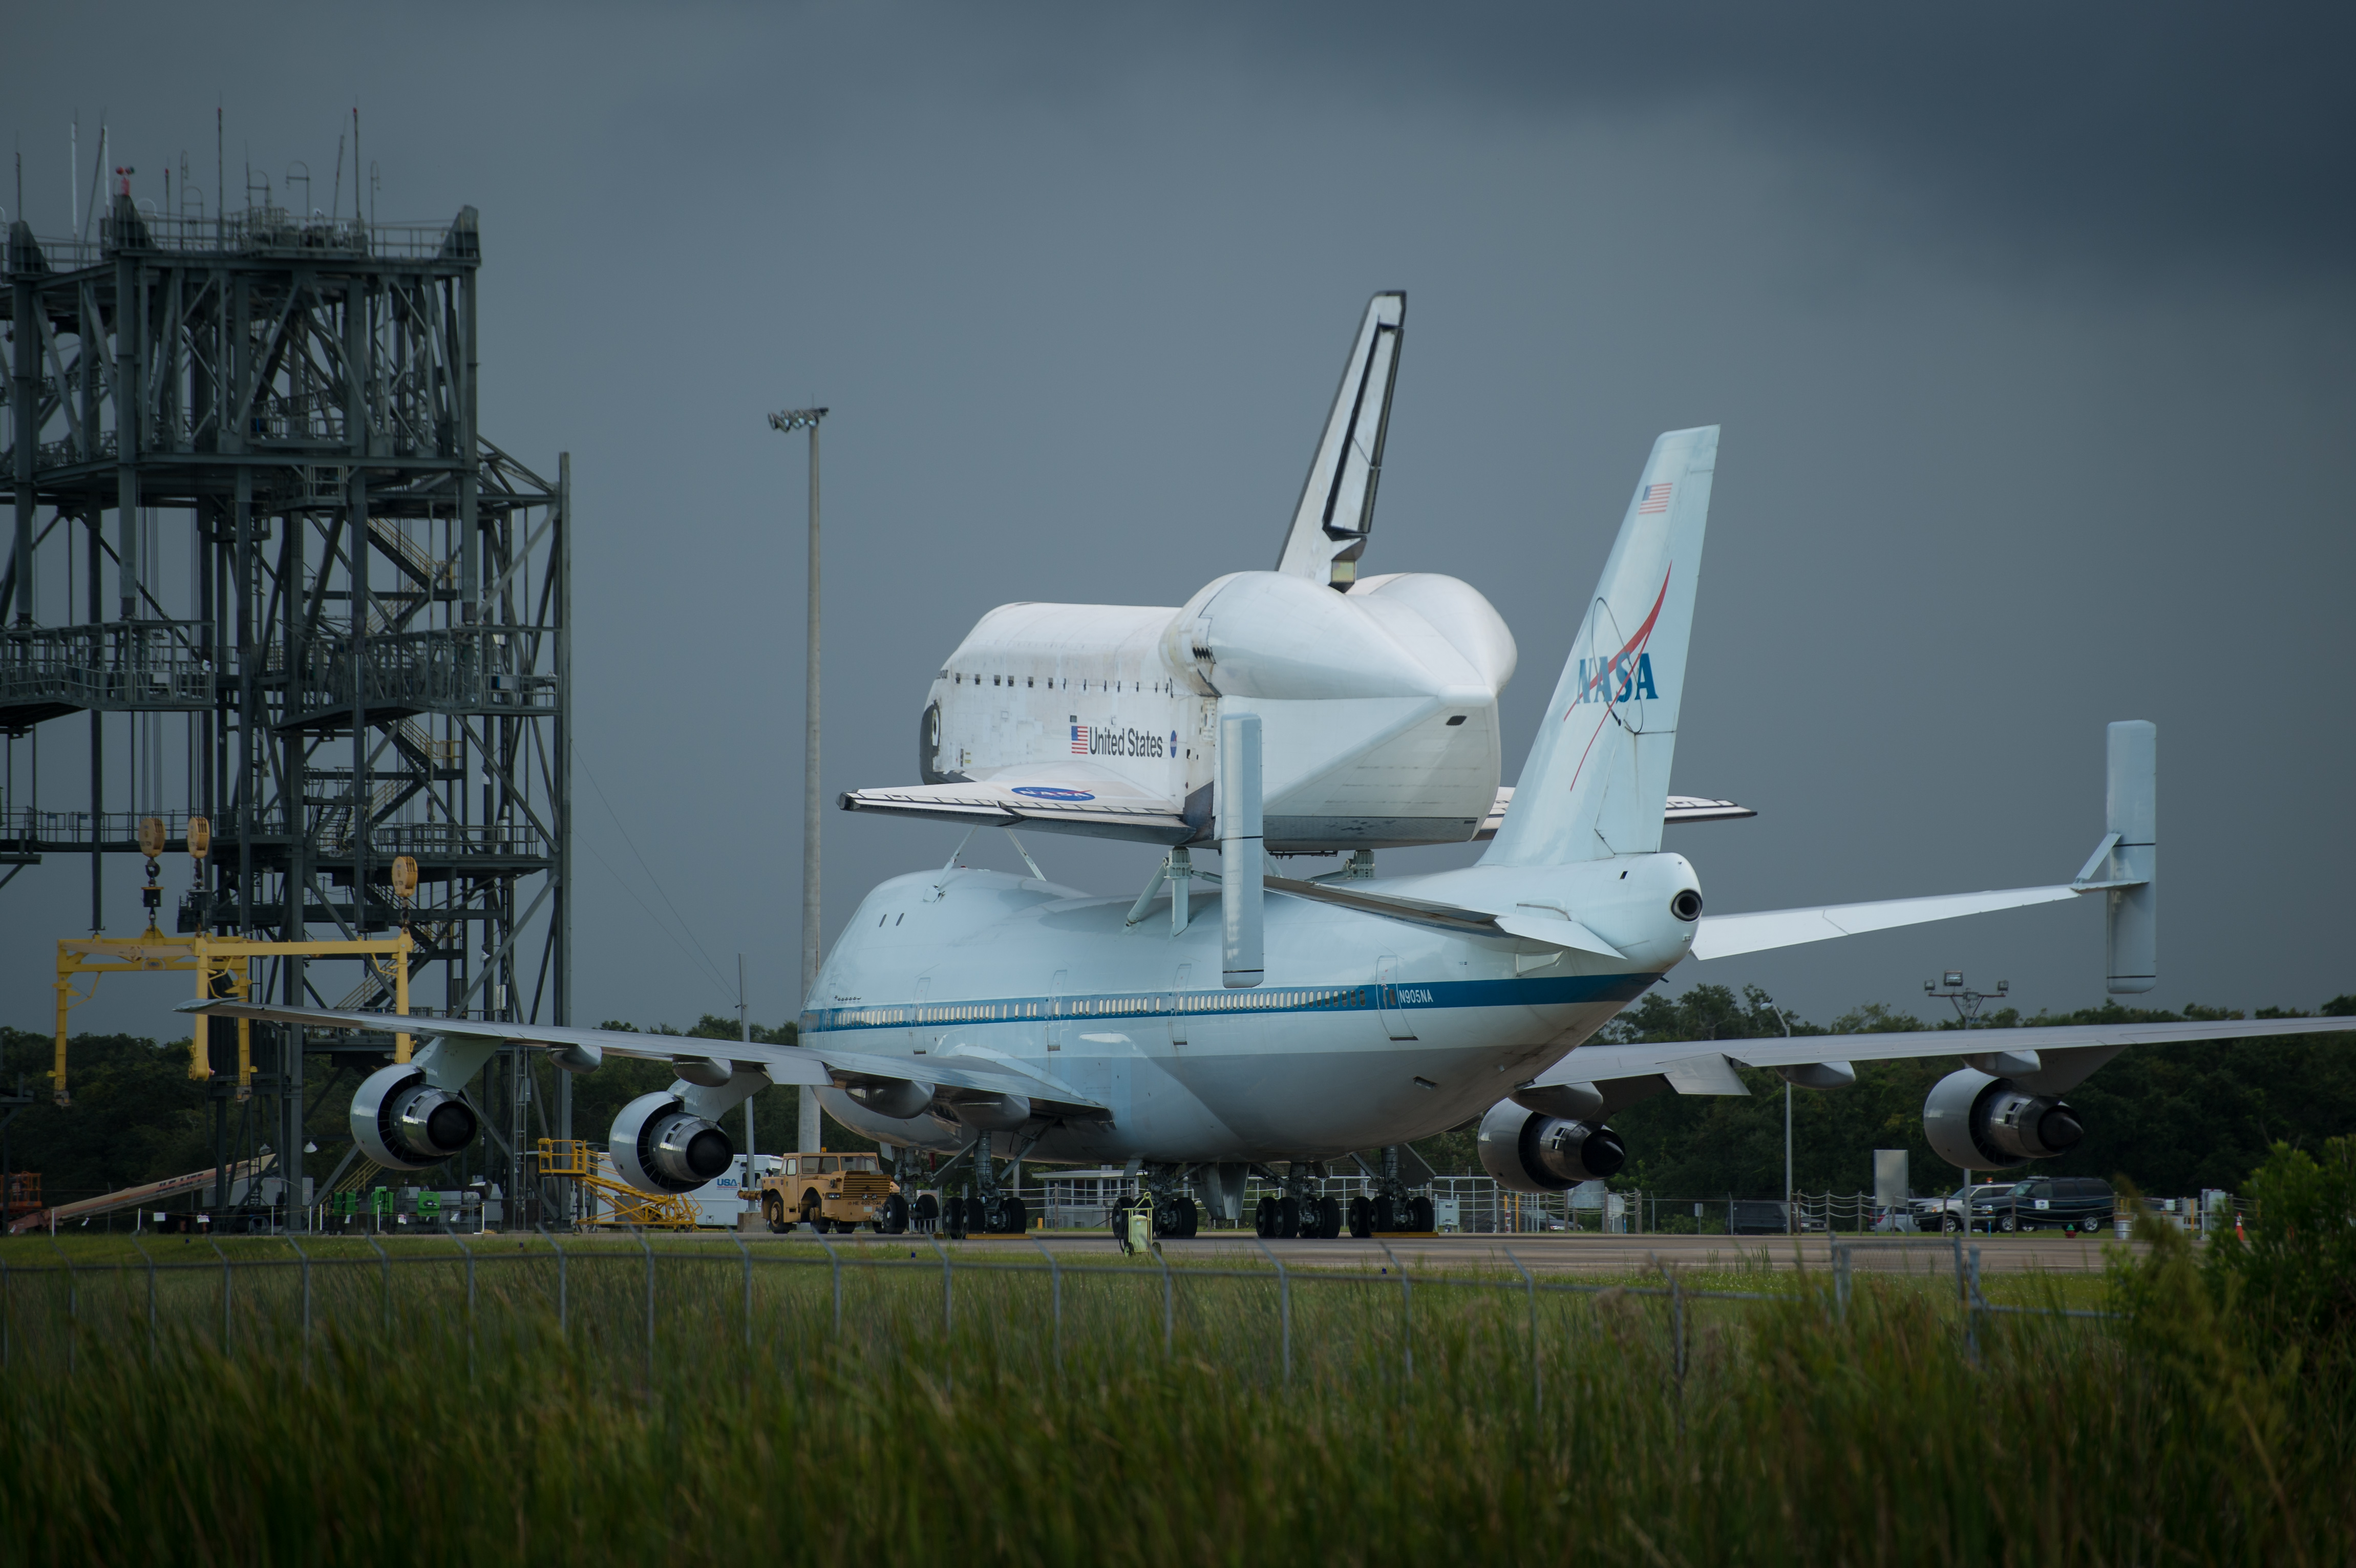 space shuttle endeavour in space - photo #5